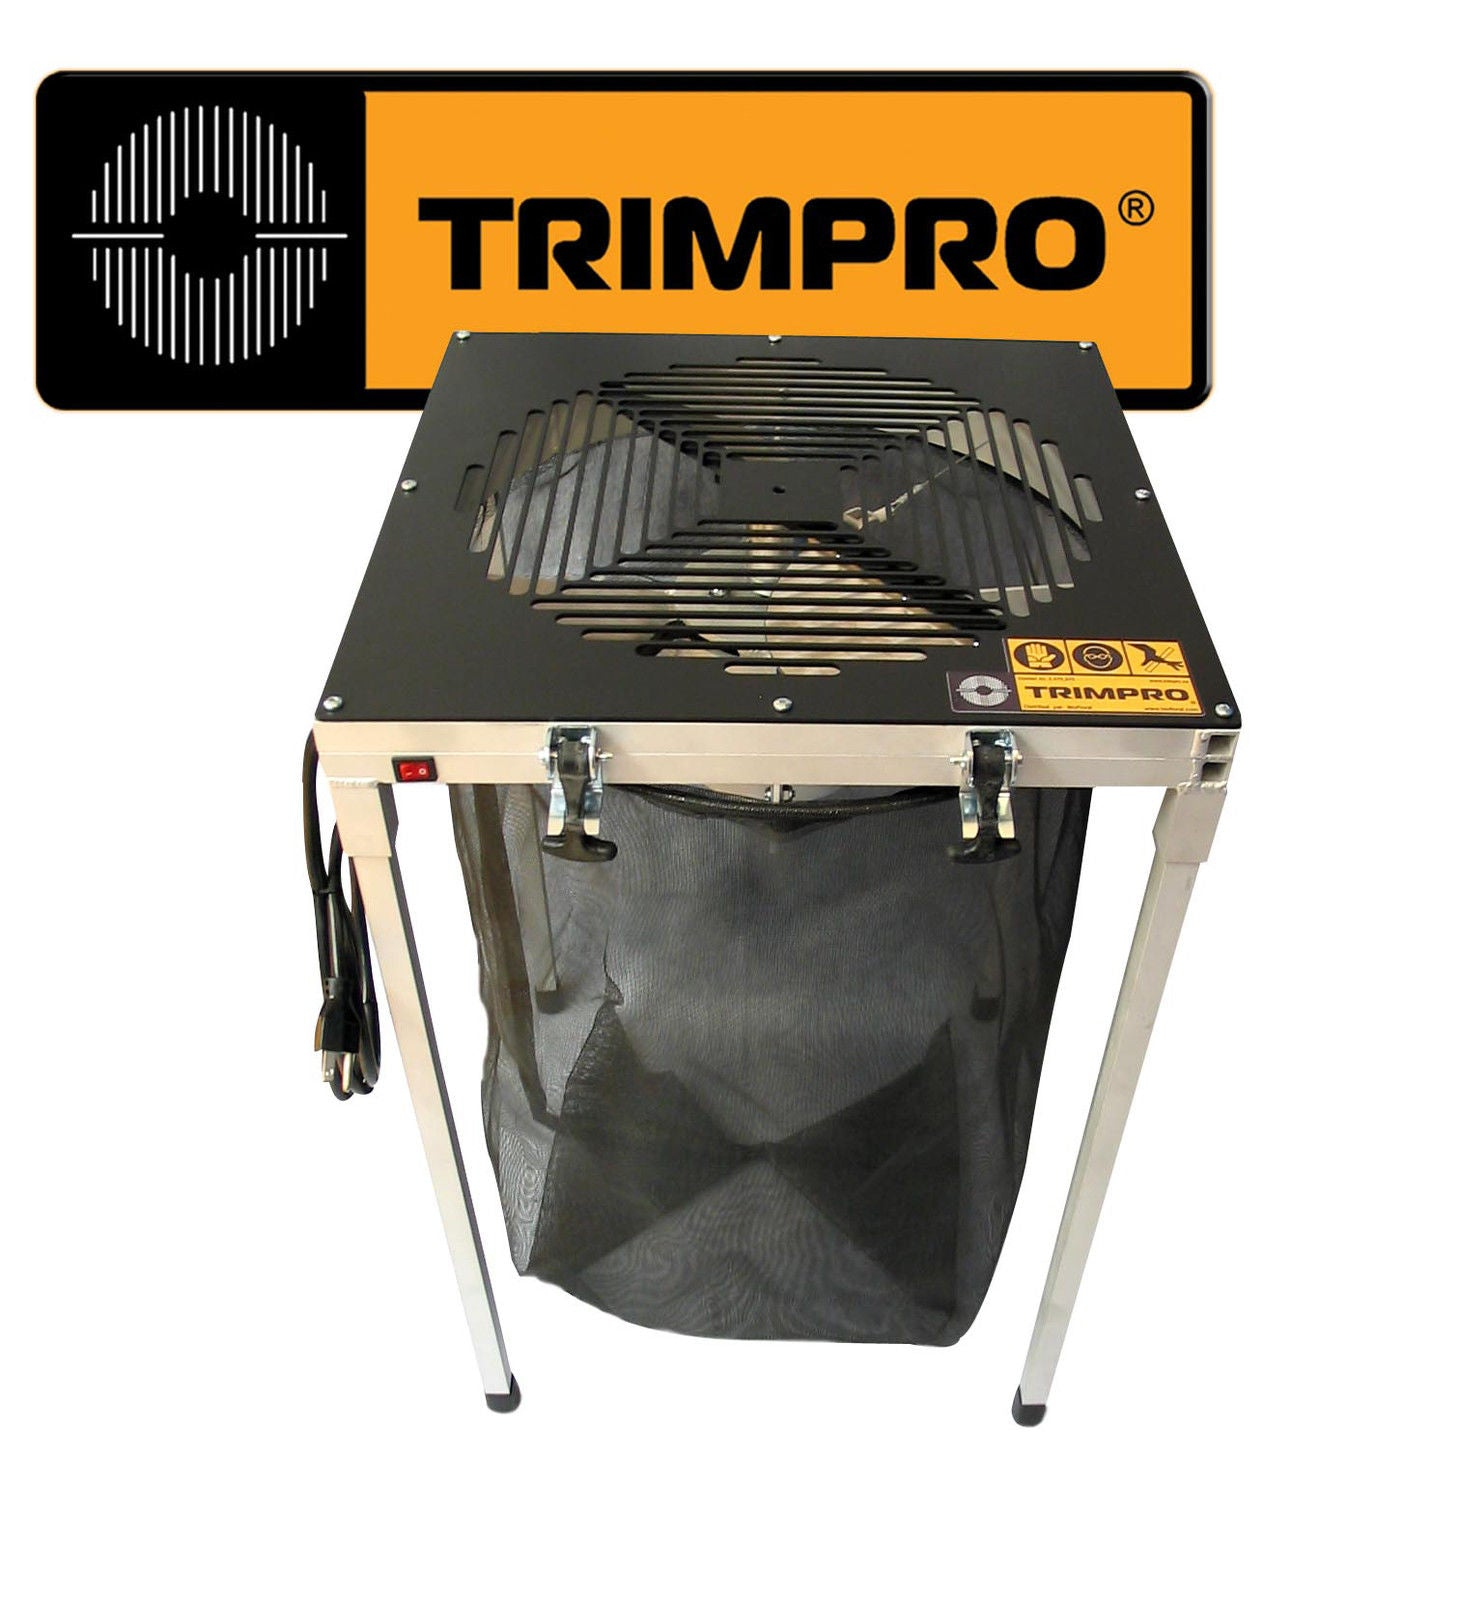 TRIMPRO ORIGINAL - BRANCH LEAF TRIMMER - MANUAL/AUTO | MADE IN CANADA